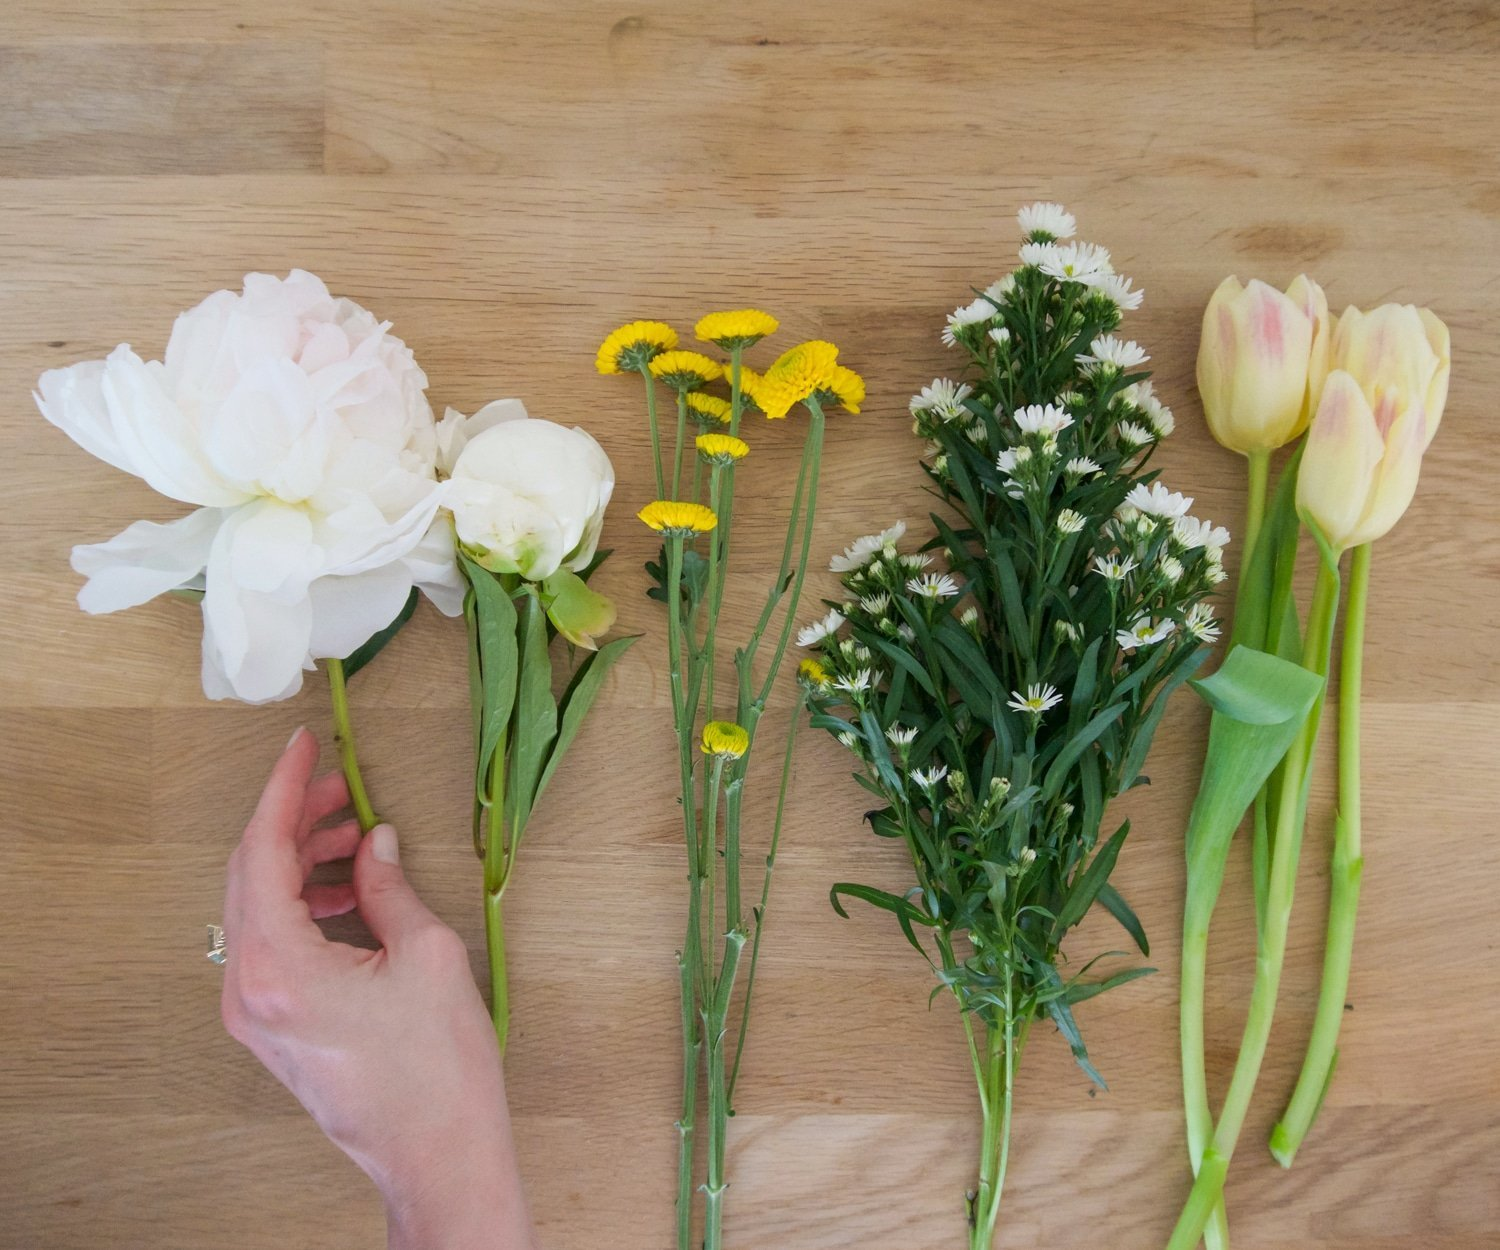 Peonies, tulips, and other spring flowers are perfect for a DIY bouquet! | www.ashleybrookedesigns.com